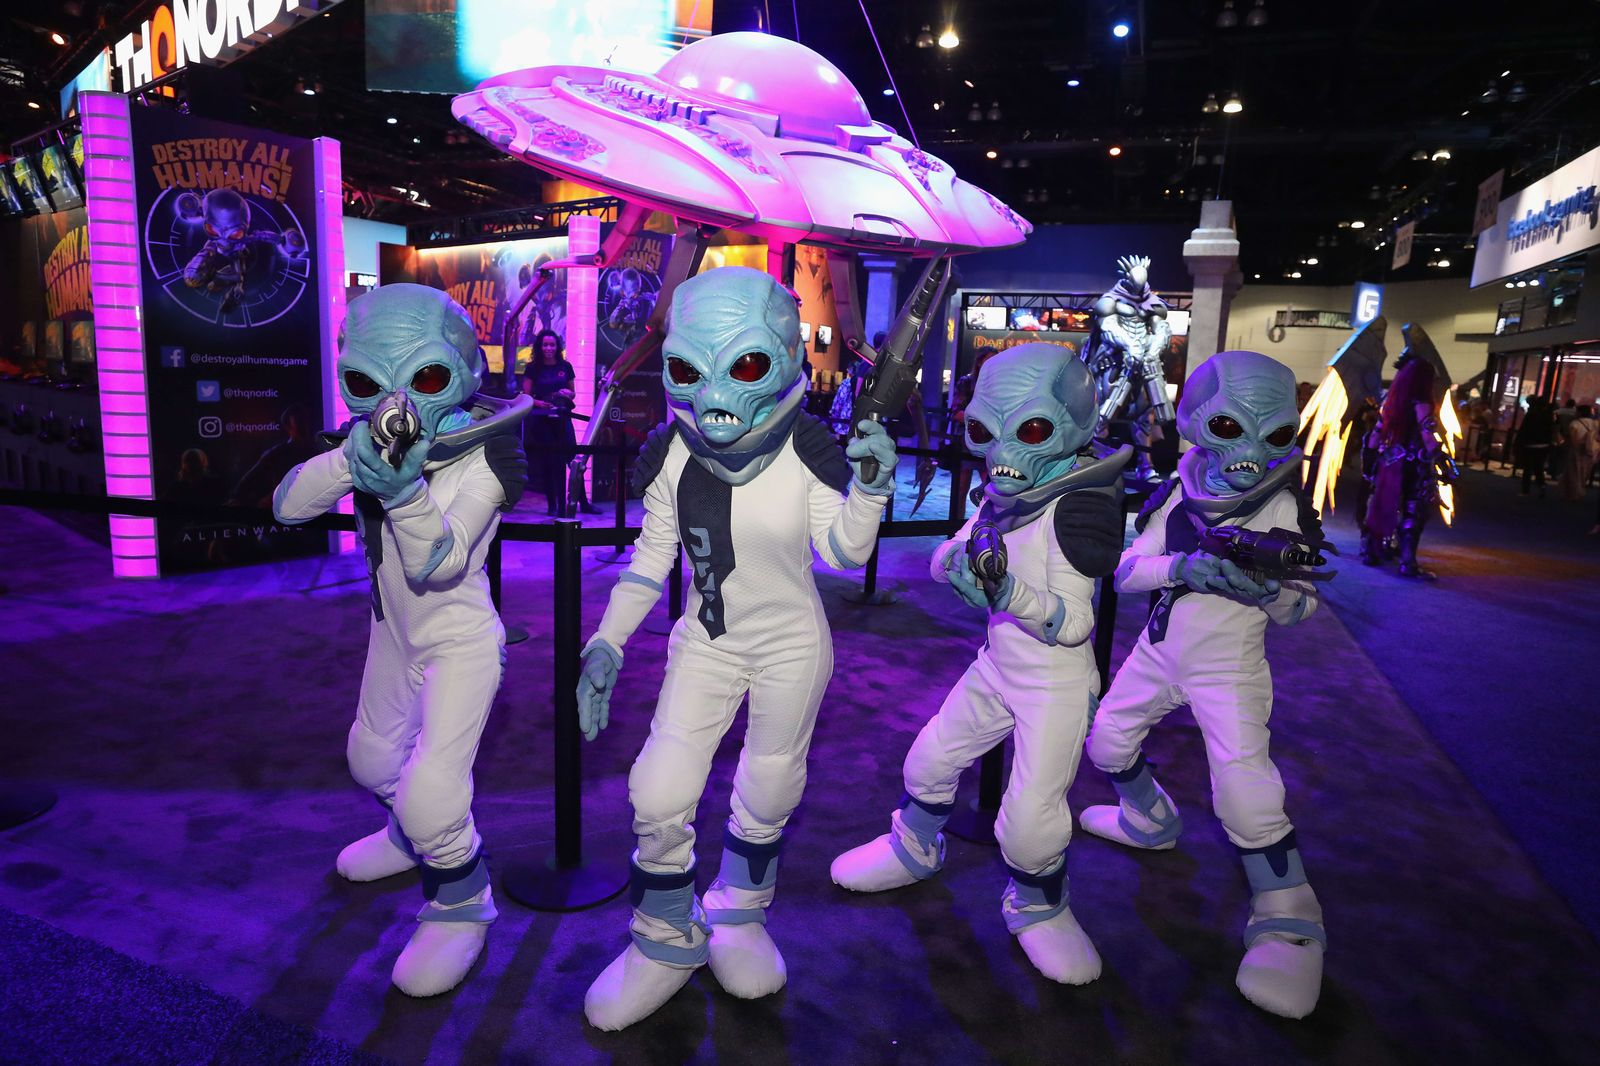 US-ANNUAL-E3-EVENT-IN-LOS-ANGELES-SHOWCASES-VIDEO-GAME-INDUSTRY